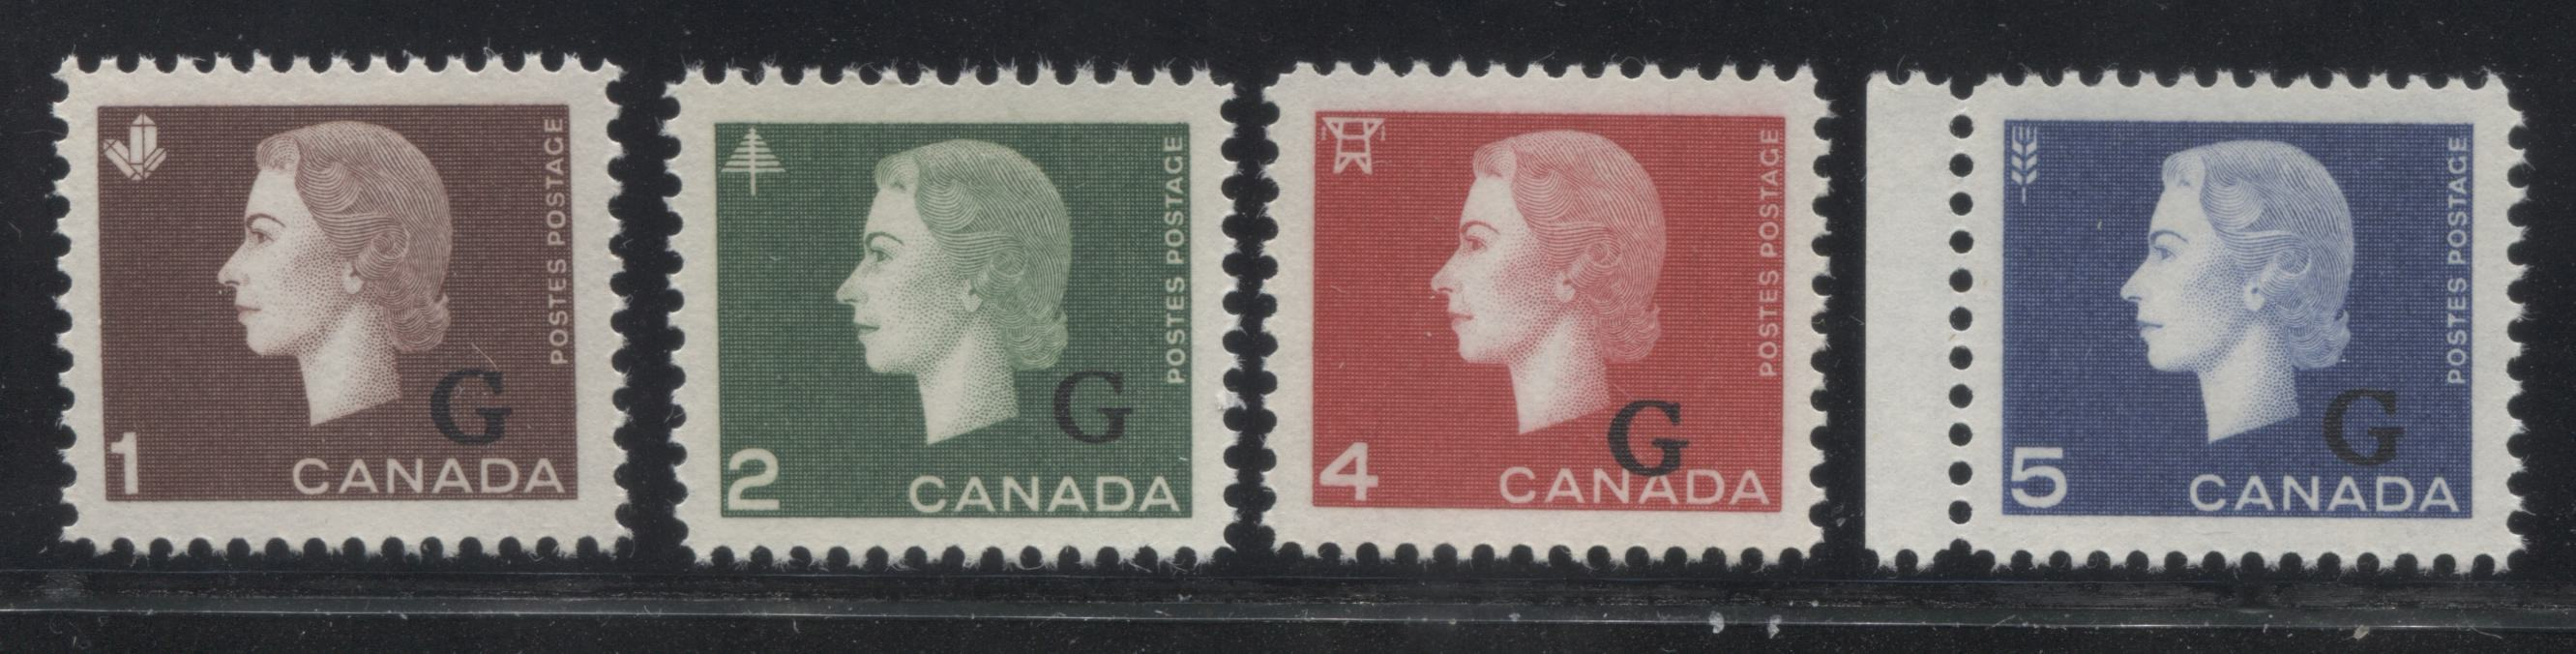 shopify auction Brixton Chrome Canada #O46-O49 1c-5c Queen Elizabeth II 1962-63 Cameo Issue Official G Overprints, a Very Fine NH Set-141565-86244